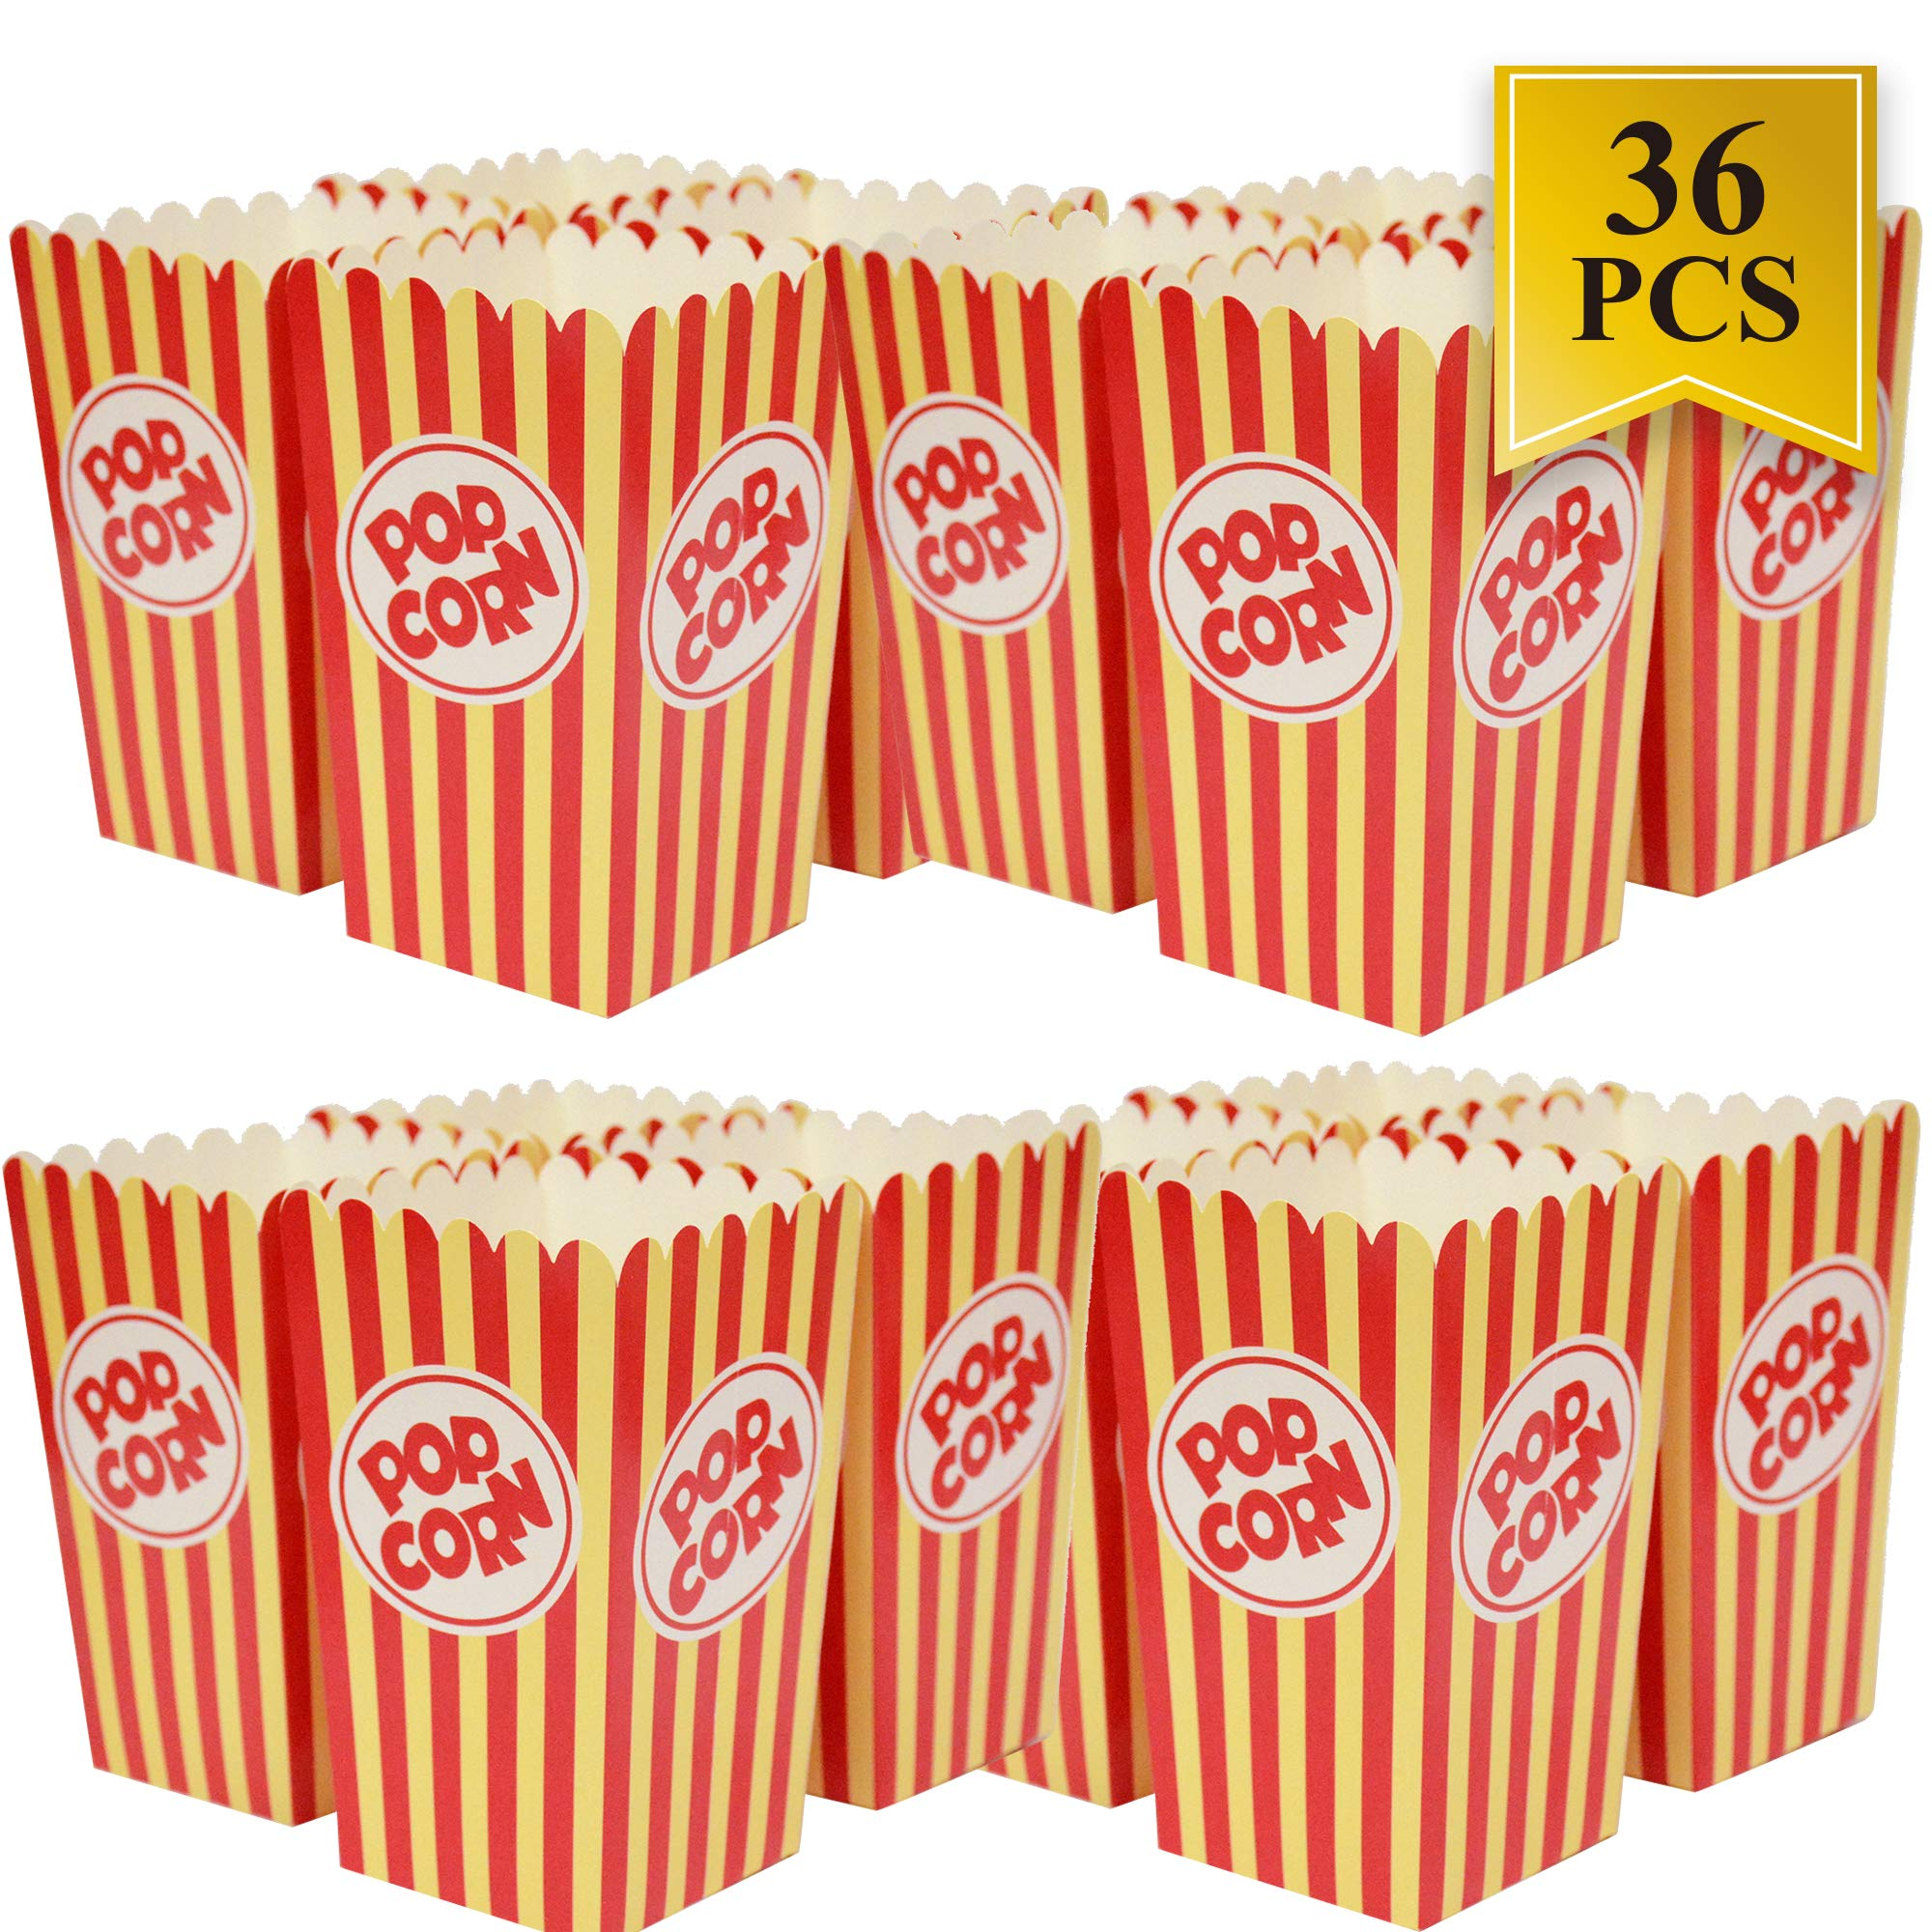 Movie Theater Popcorn Boxes - 36 Pack Paper Popcorn Boxes Striped Red and White - Prefect for Movie Night or Movie Party Theme